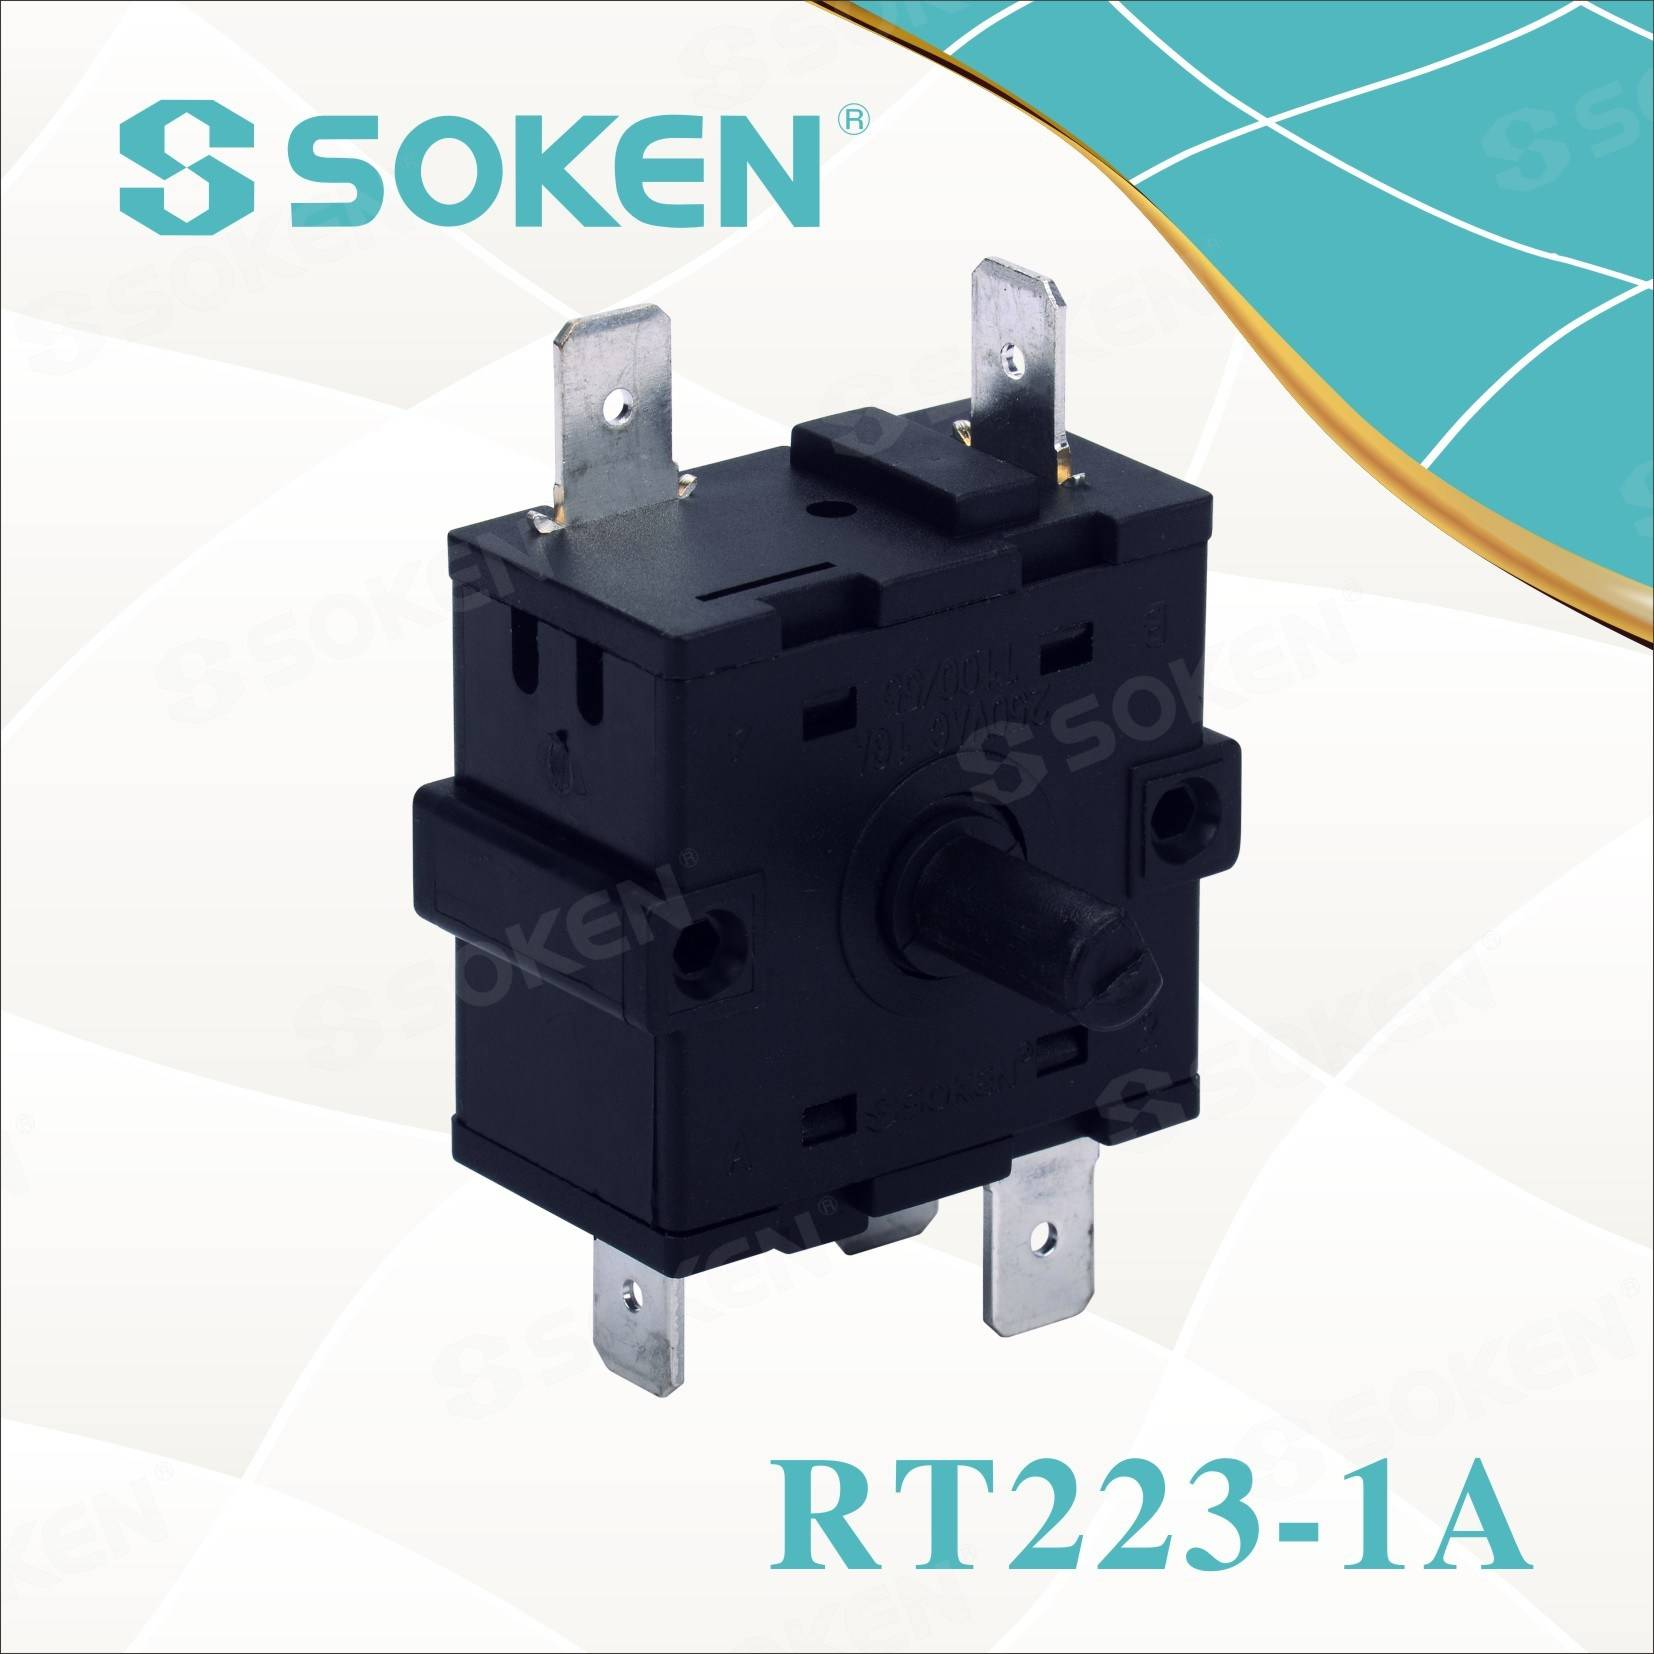 Soken 5 Asta Switch Rotary